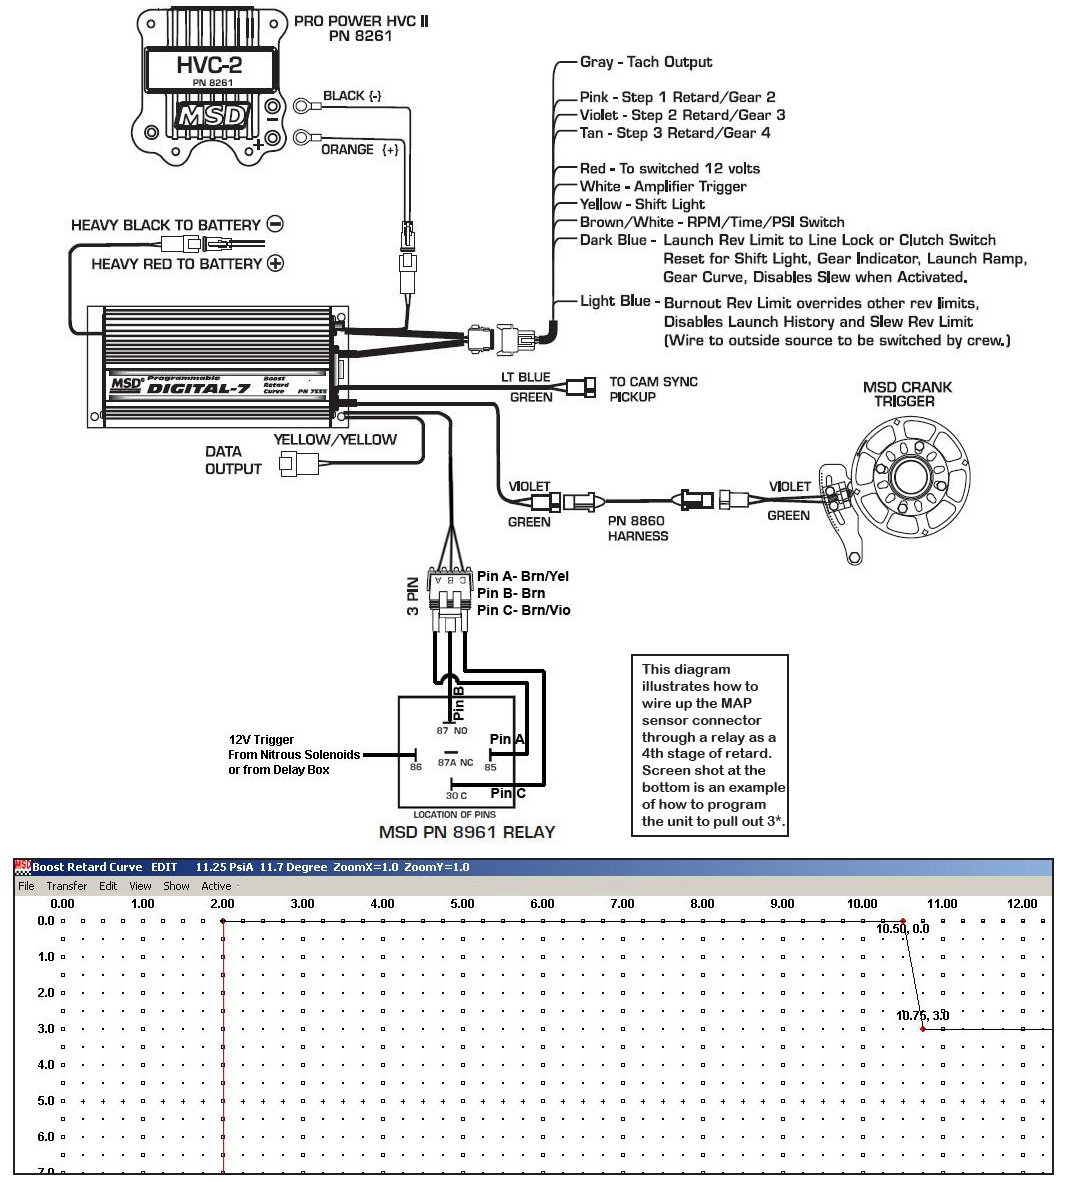 Chevy Ignition Coil Wiring Diagram Without Msd Layout Jacobs Images Gallery